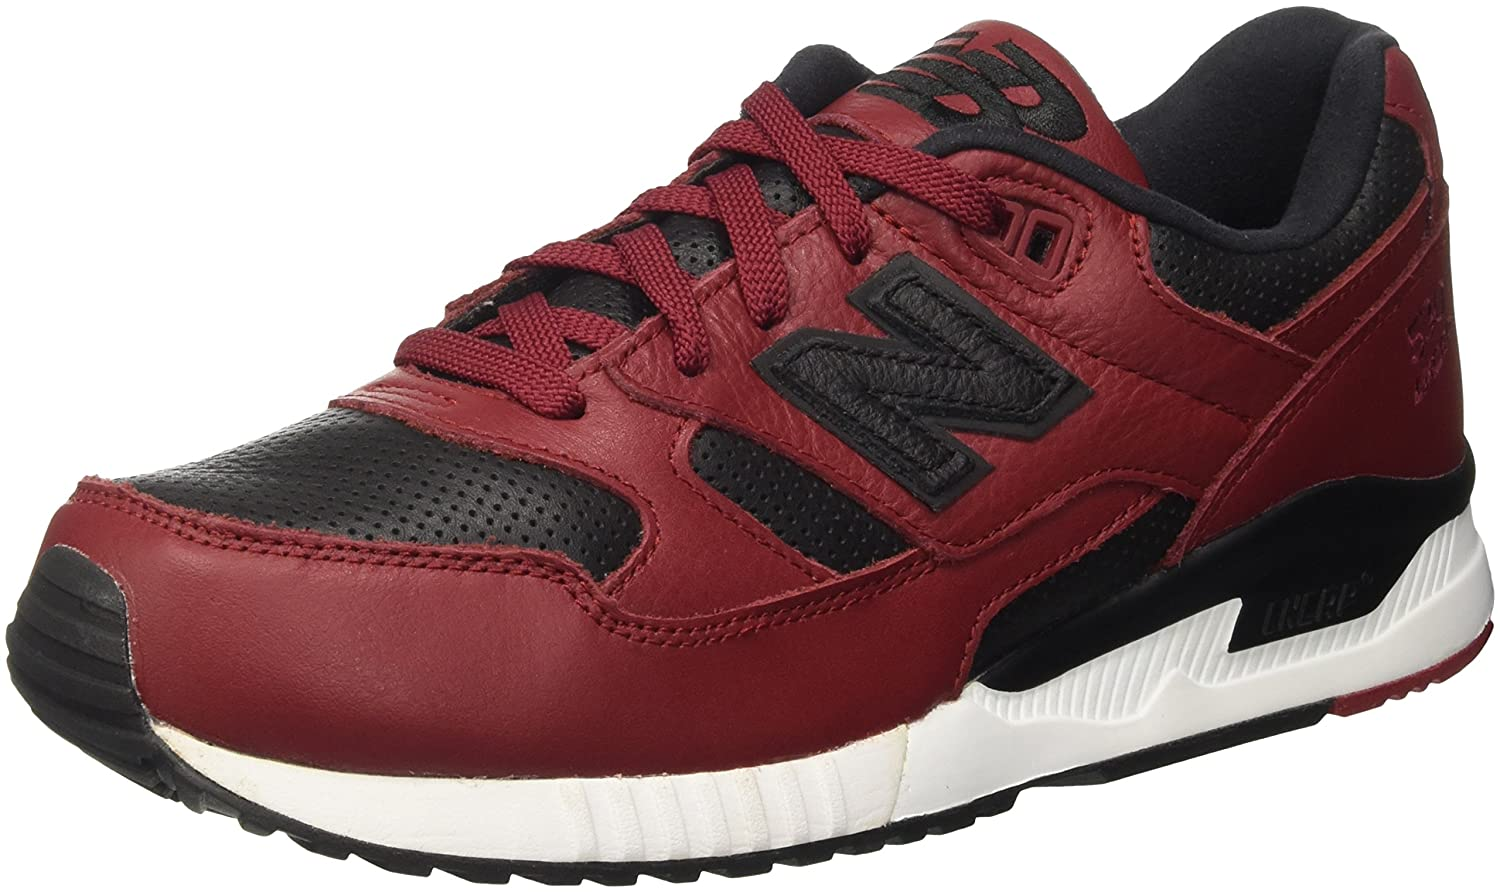 Rouge (rouge) New Balance 530, Baskets Basses Homme 40.5 EU